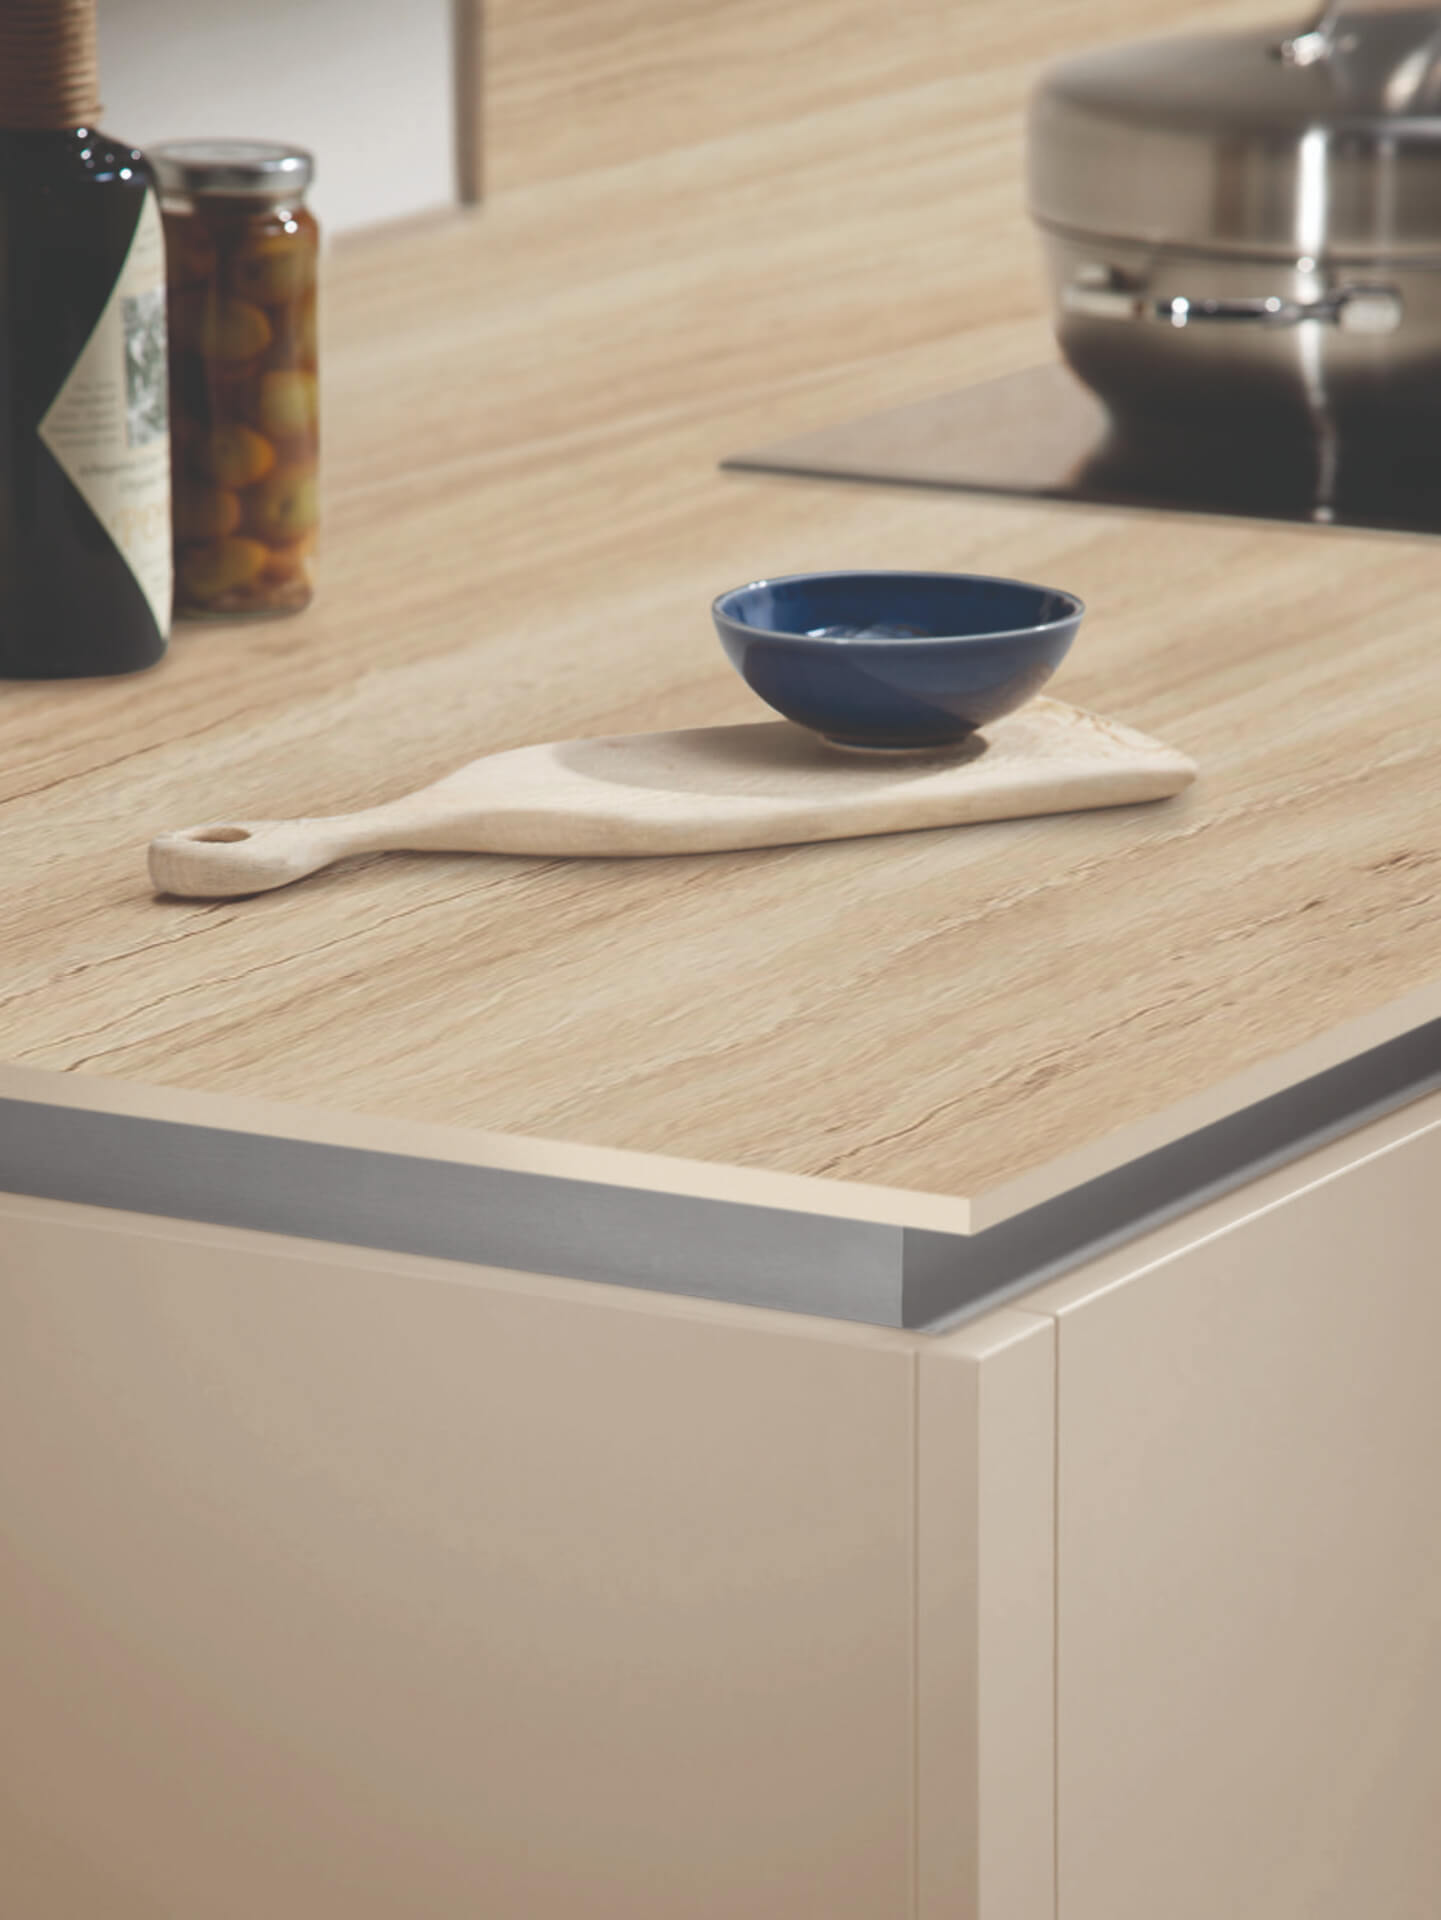 Bushboard Evolve Wooden Worktop